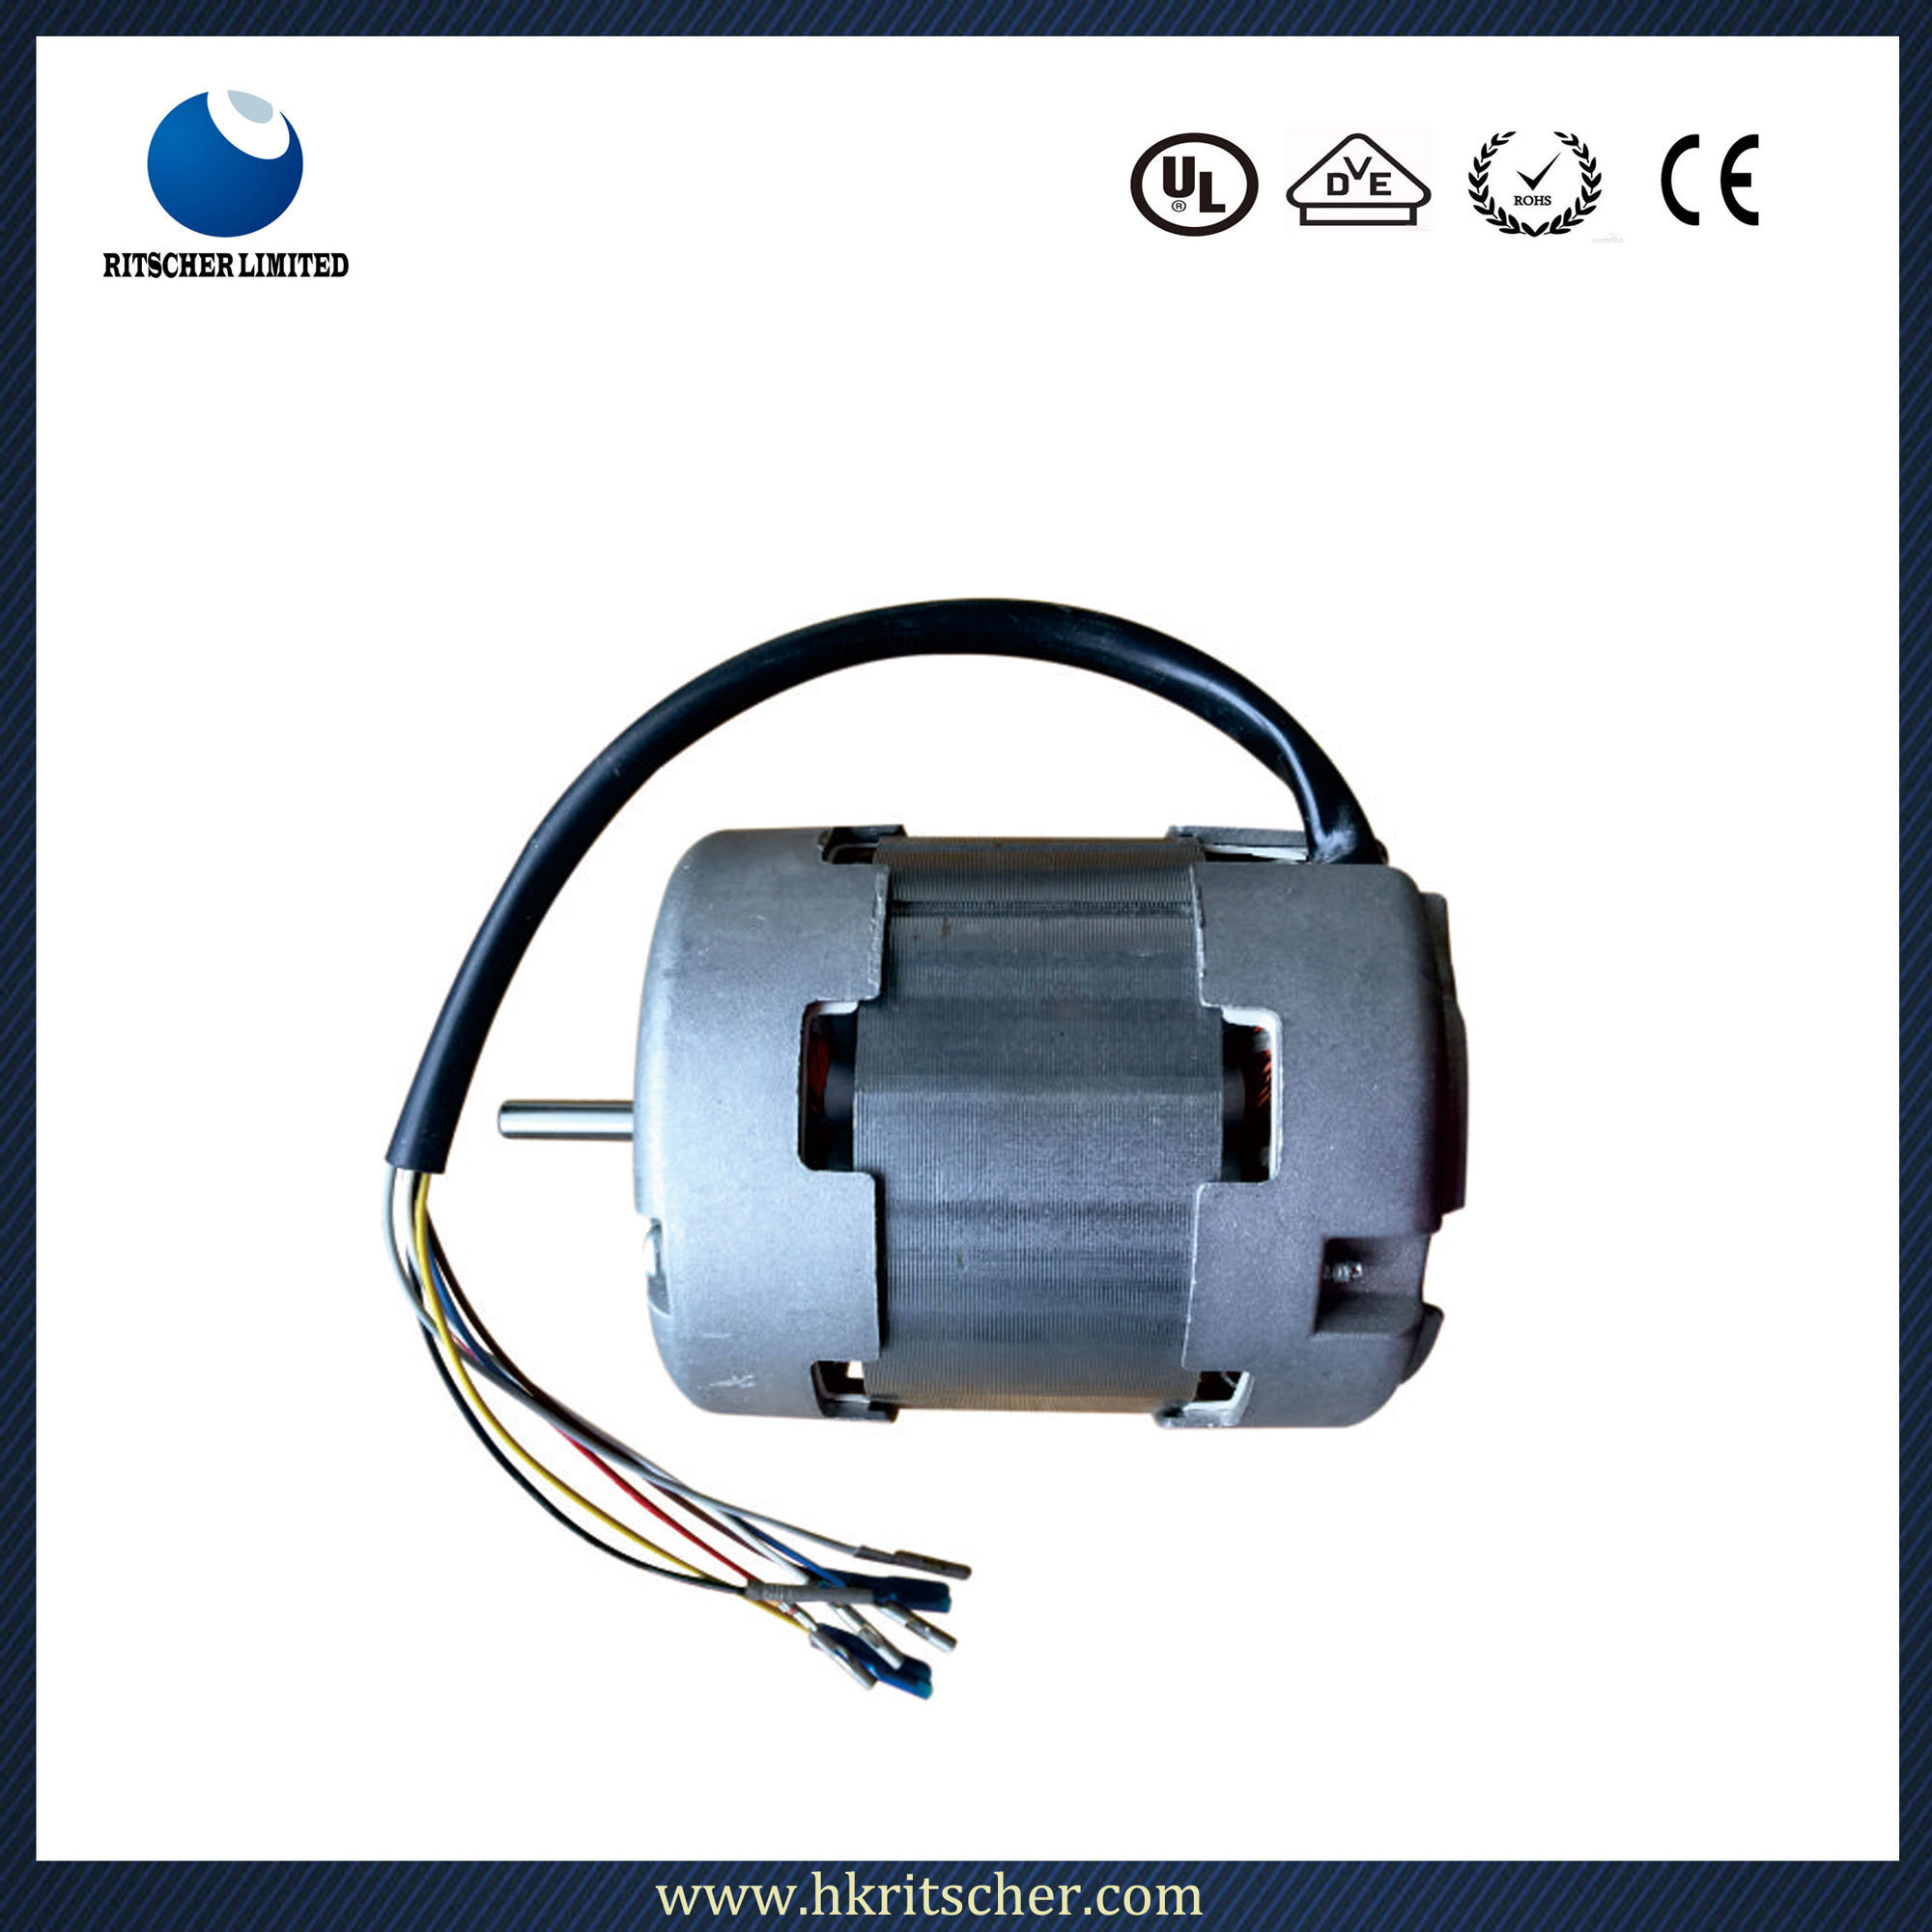 Auto Parts Capacitor Motor for Home Appliances Dryer Motor